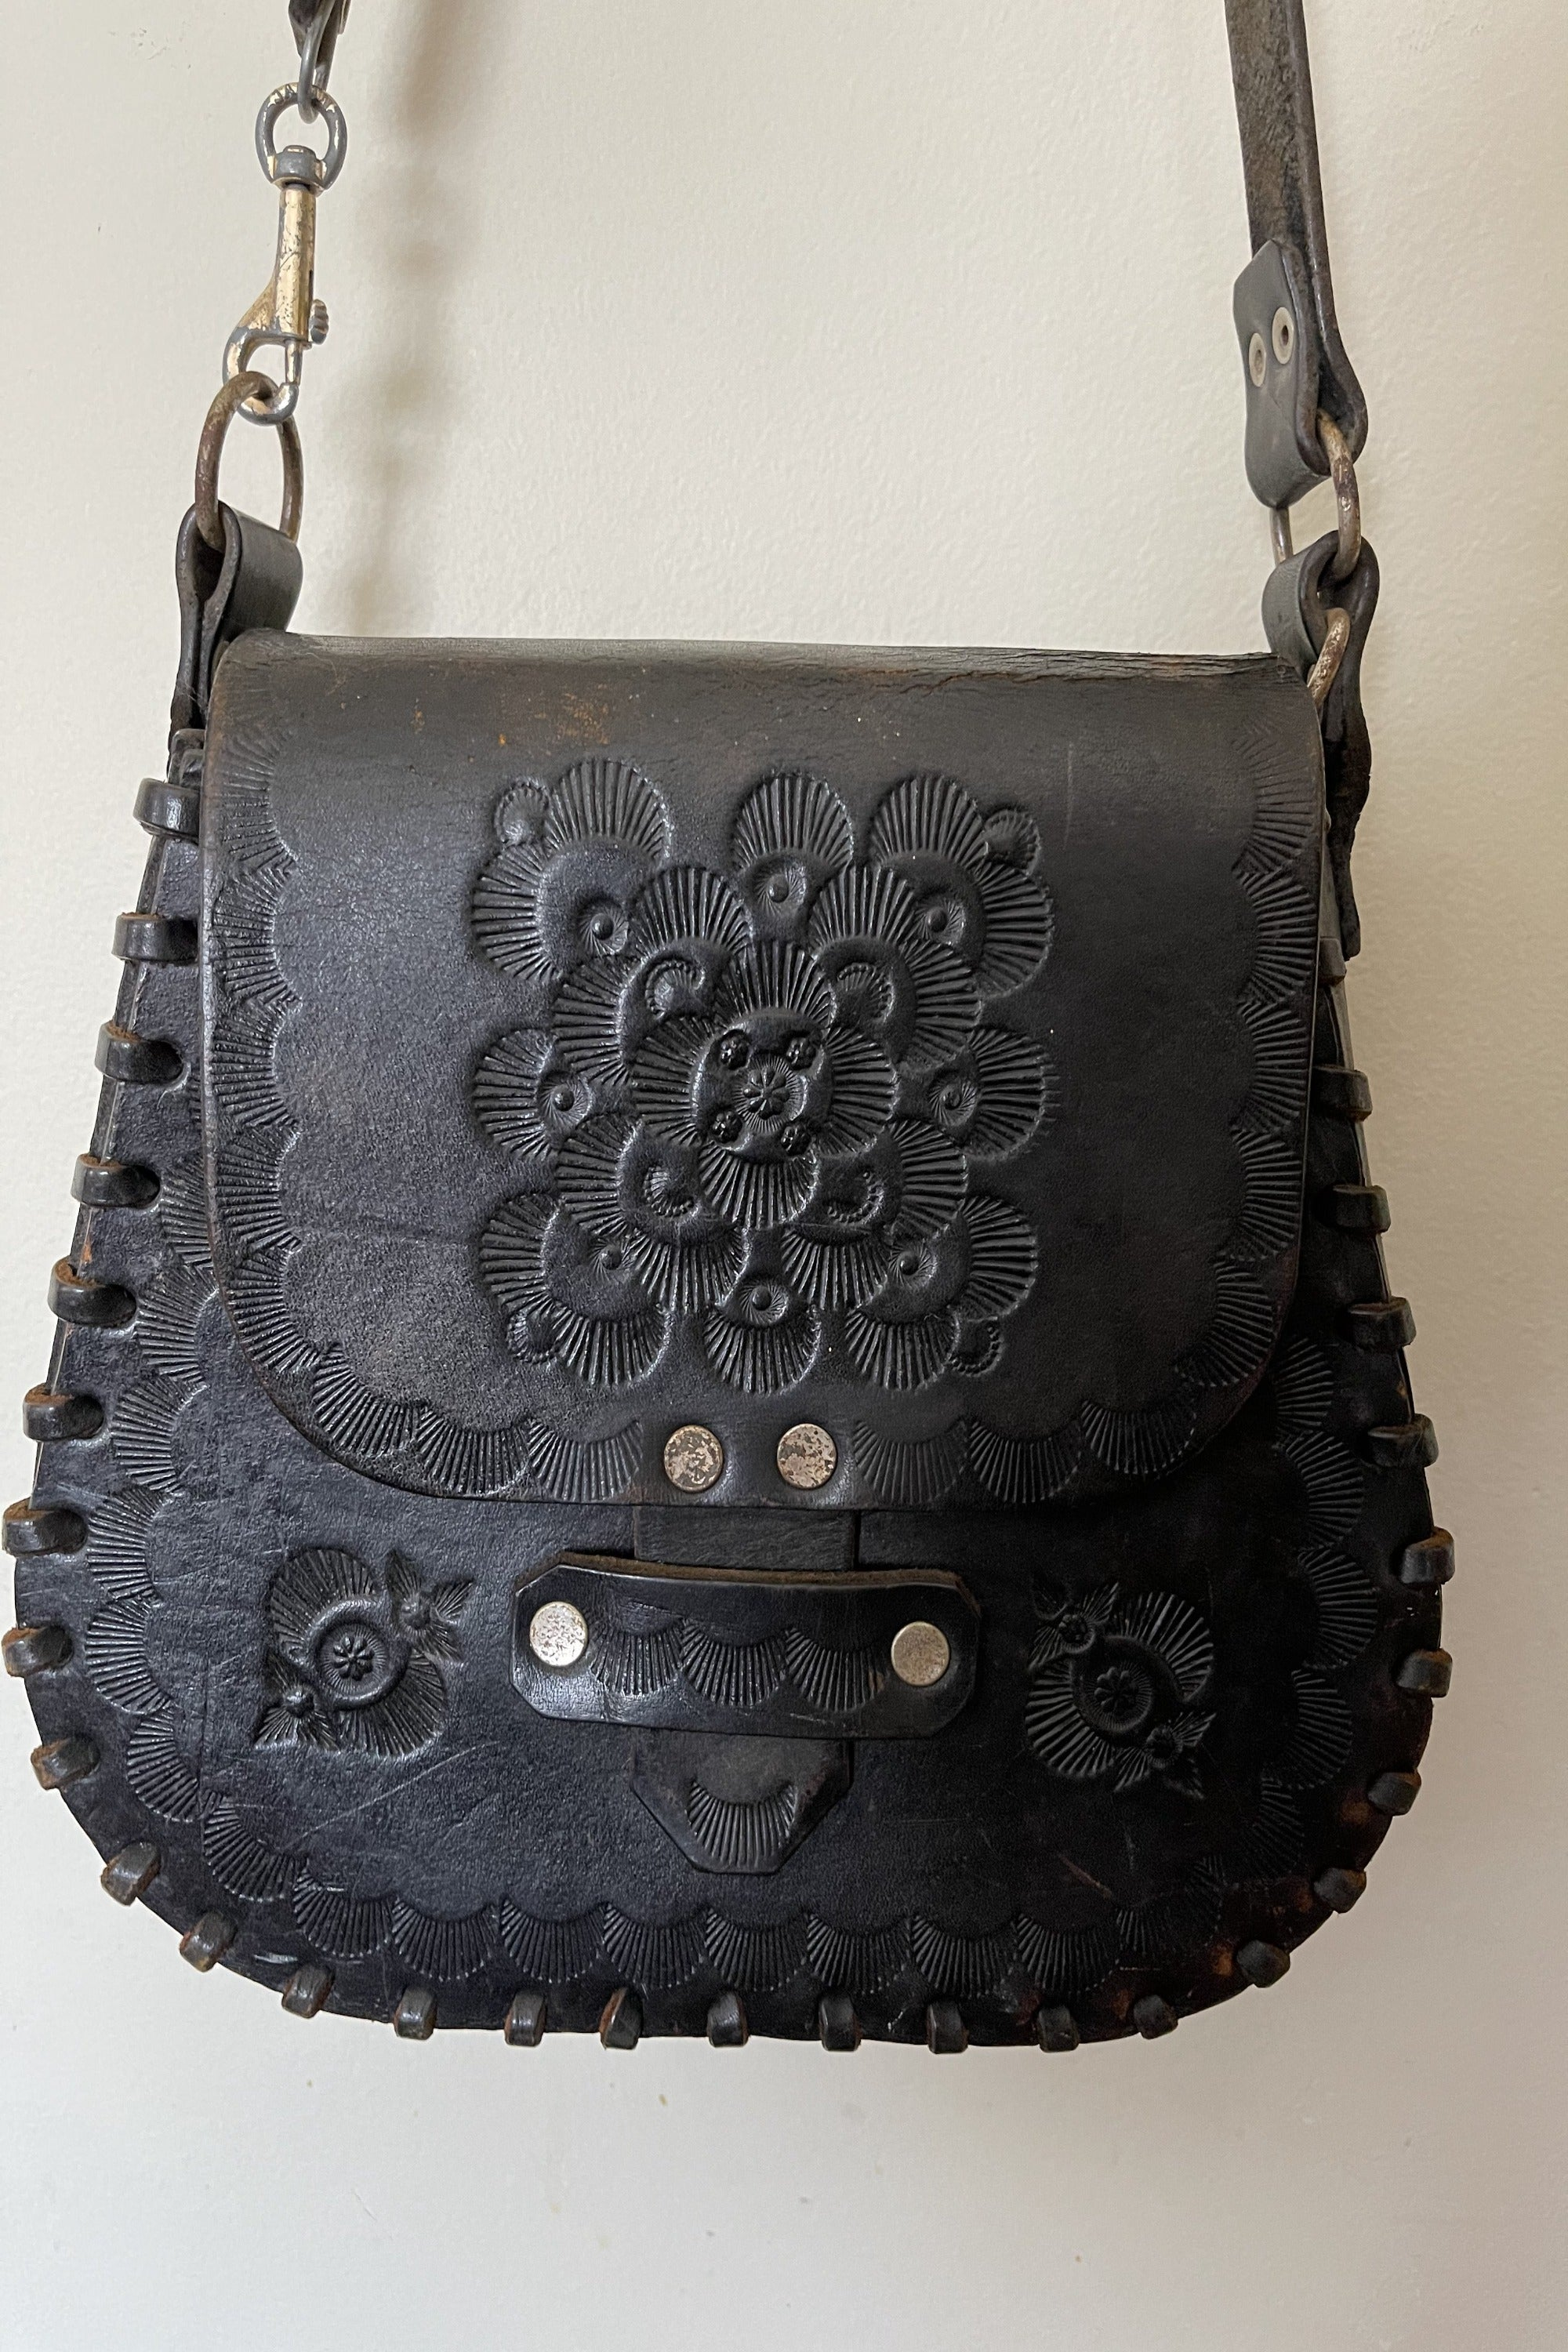 Vintage 1970s Hand Tooled Black Leather Handbag